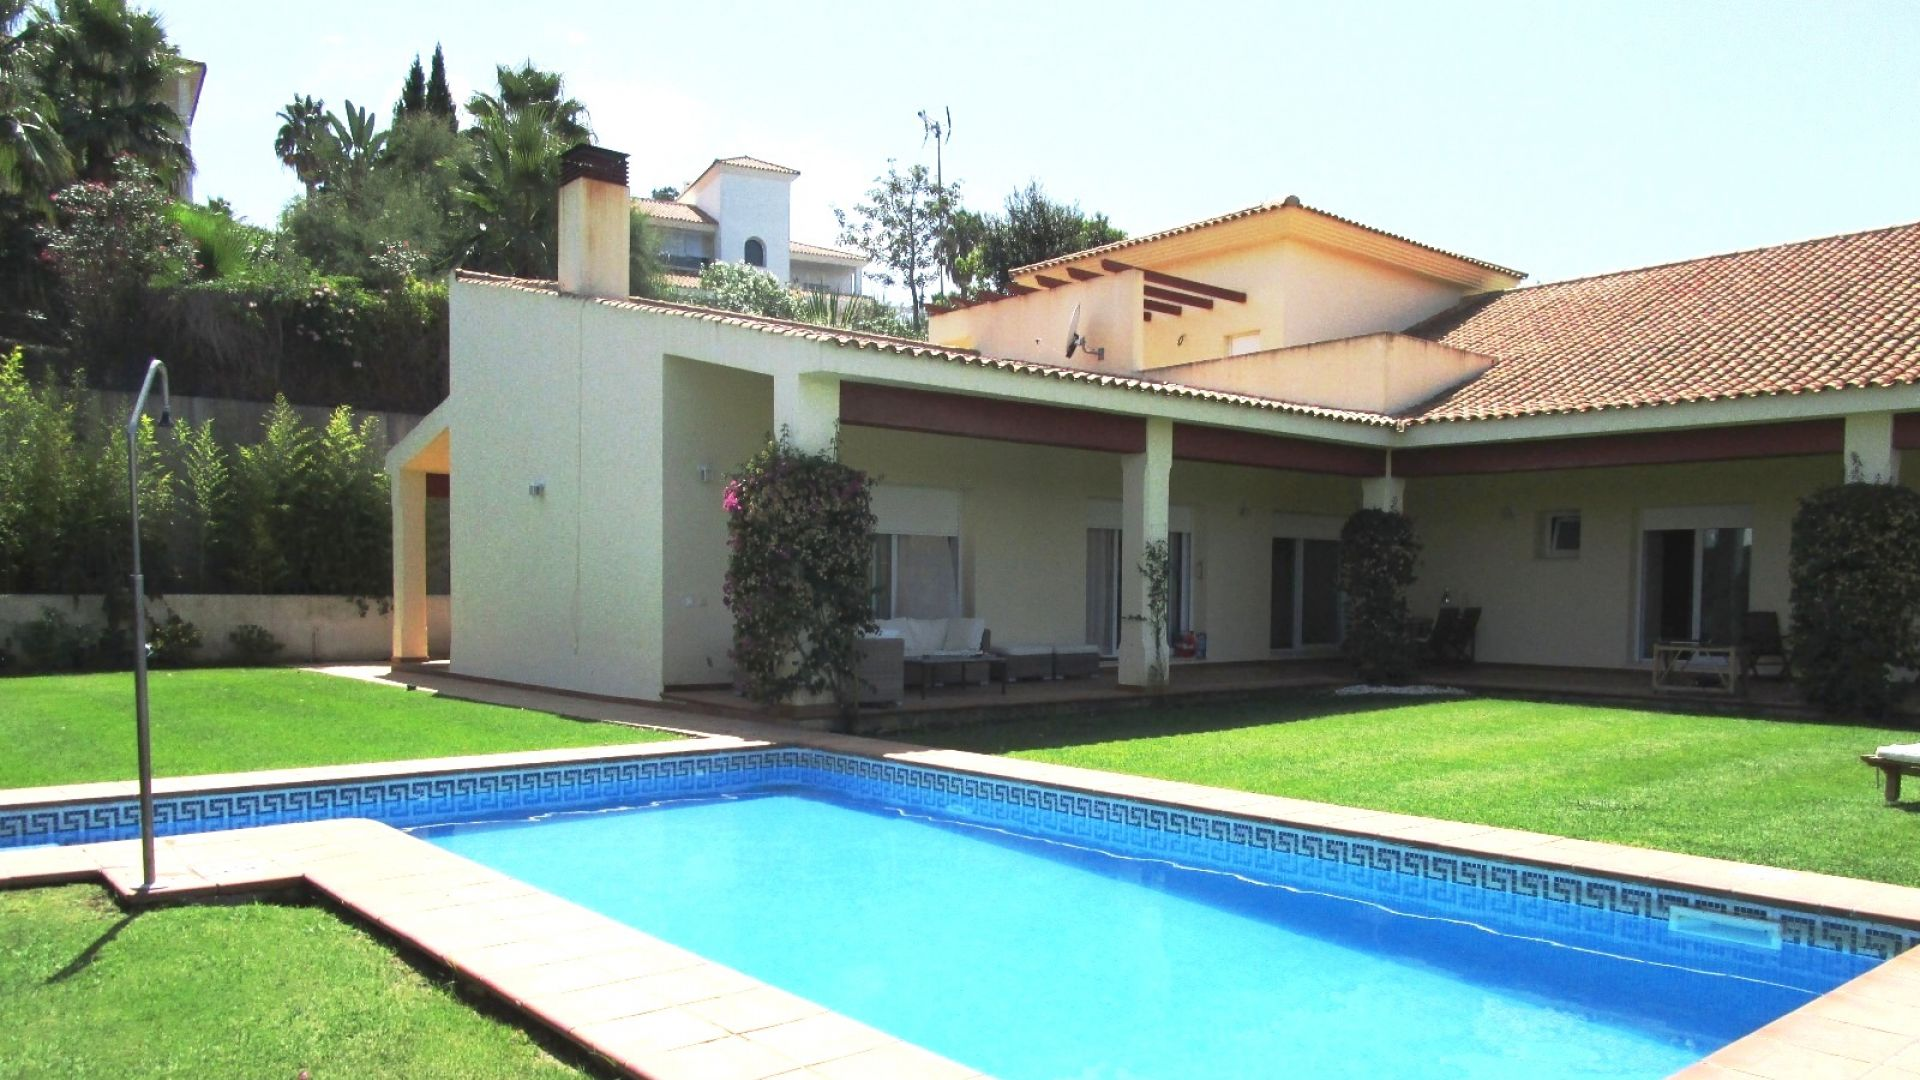 Single Family Home for Sale at Lovely L-shaped villa in Sotogrande Alto with breathtaking views 11310 Sotogrande (Sotogrande Alto), Cadiz (Spain) Other Spain, Other Areas In Spain, 11310 Spain